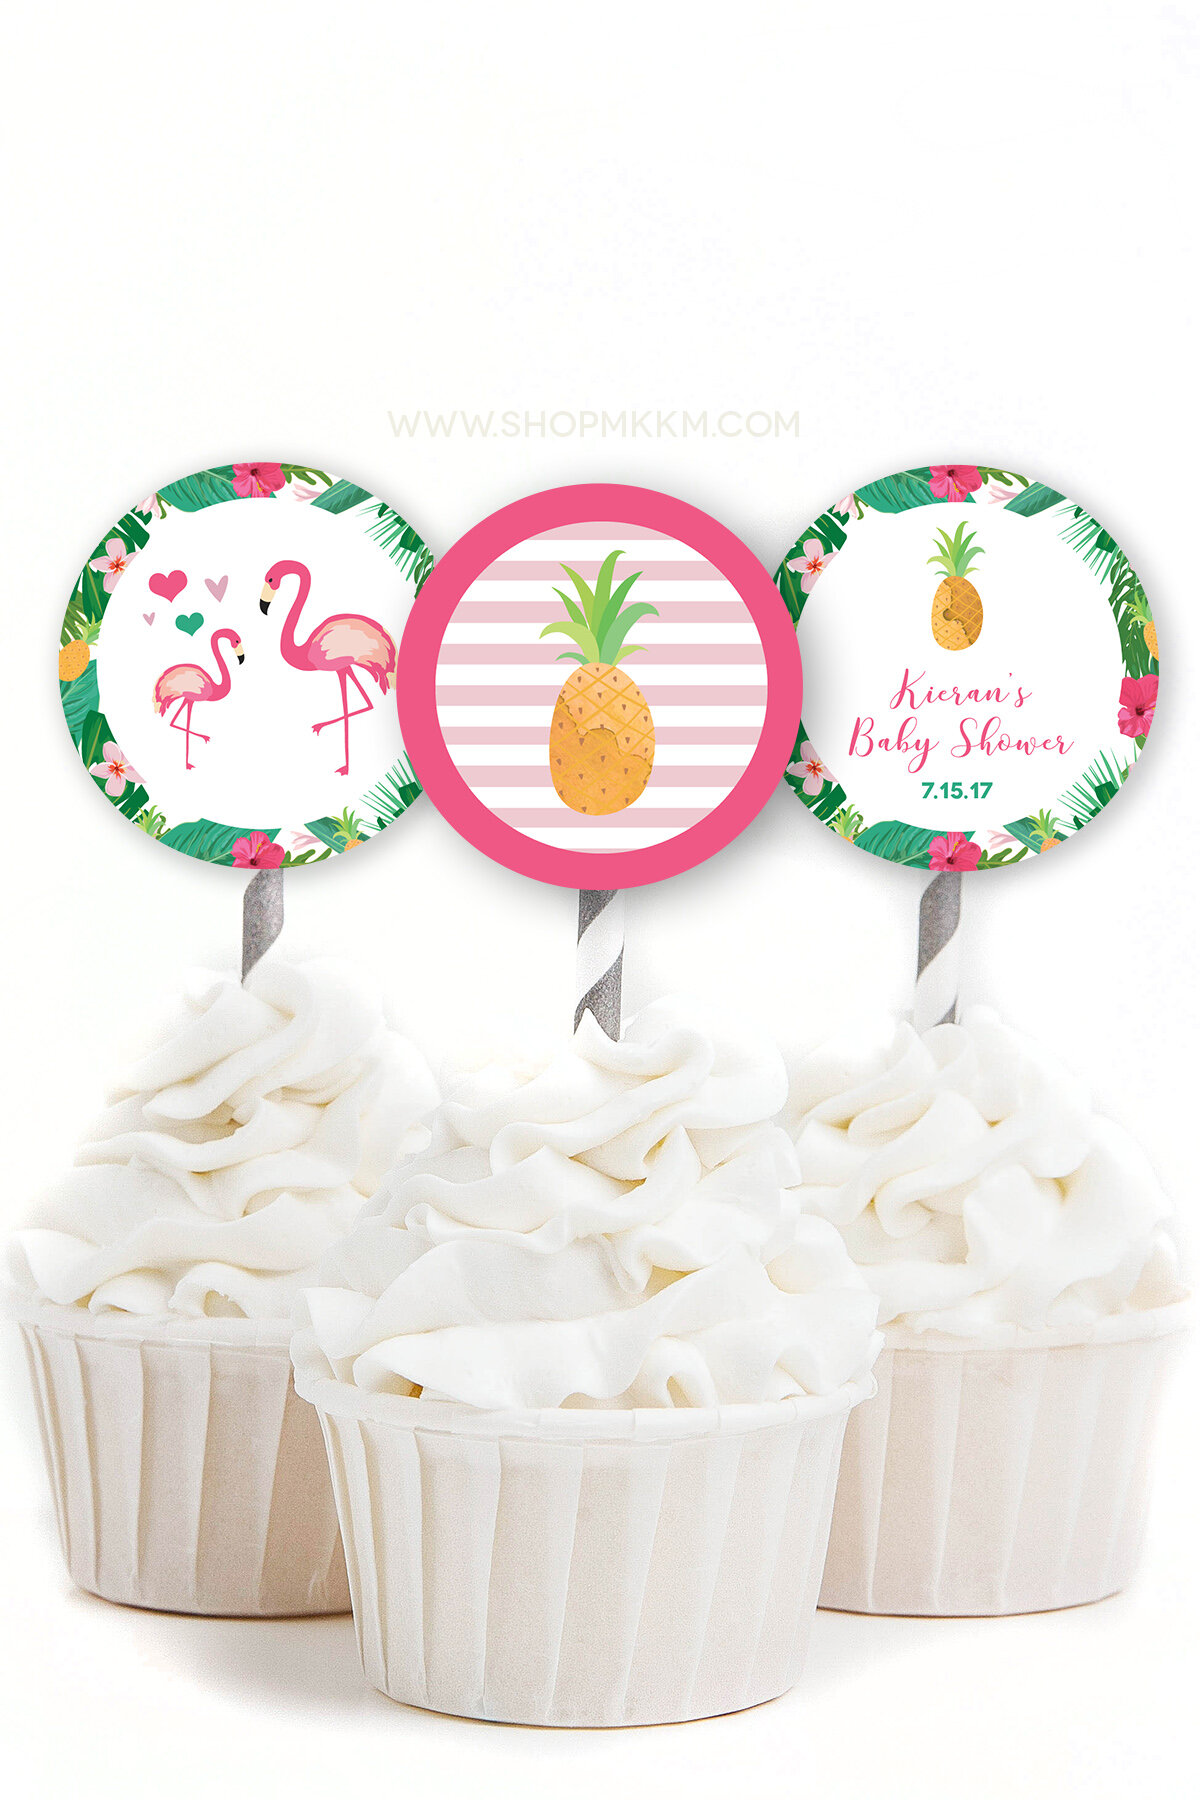 Flamingo Cupcake Toppers from mkkmdesigns.com